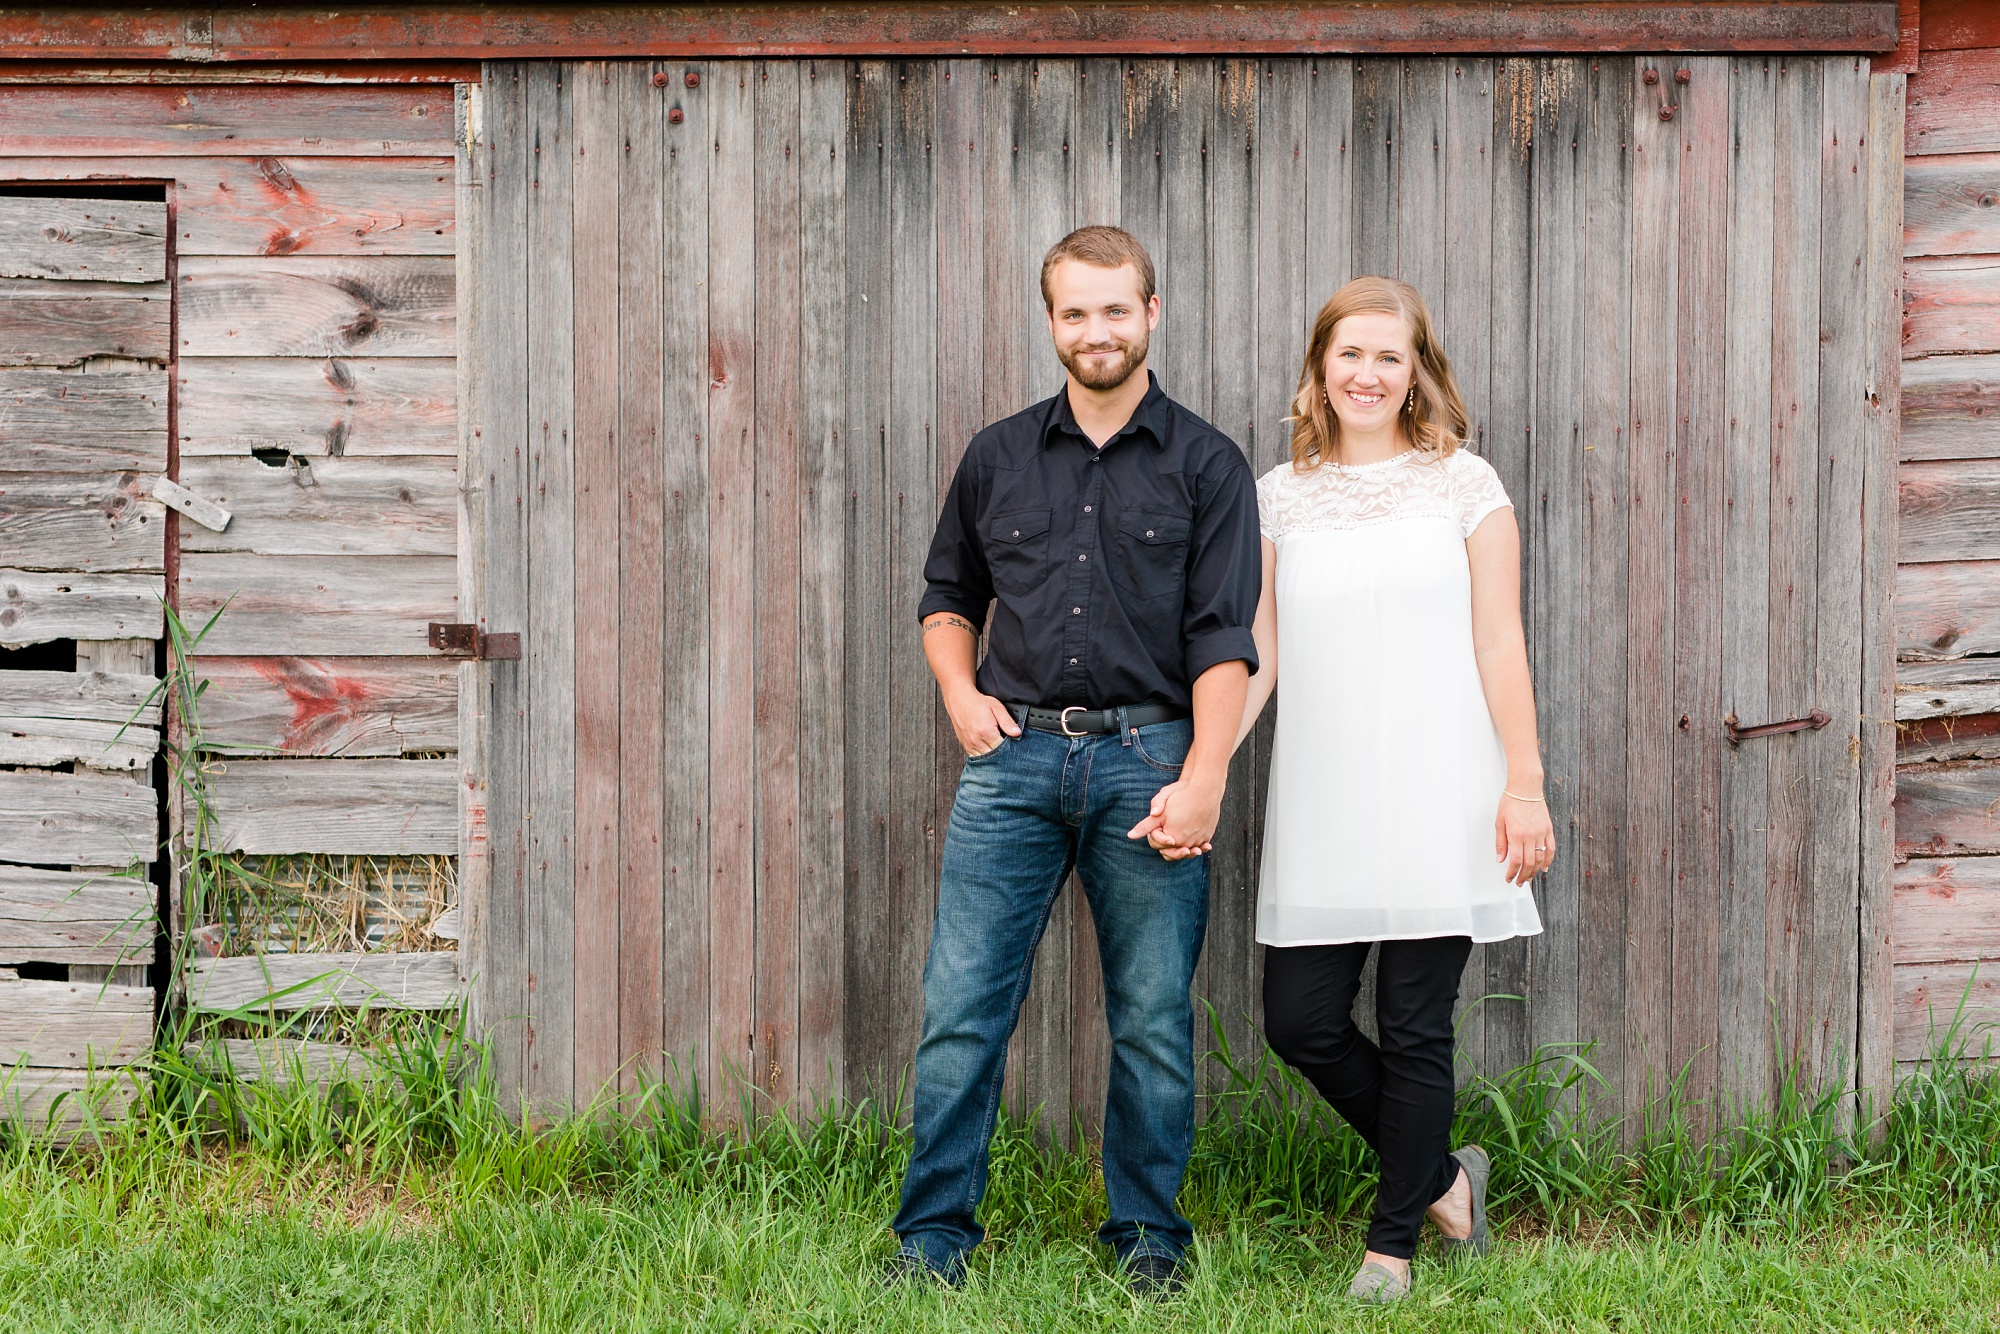 AmberLangerudPhotography_Countryside Engagement Session in Minnesota_3117.jpg